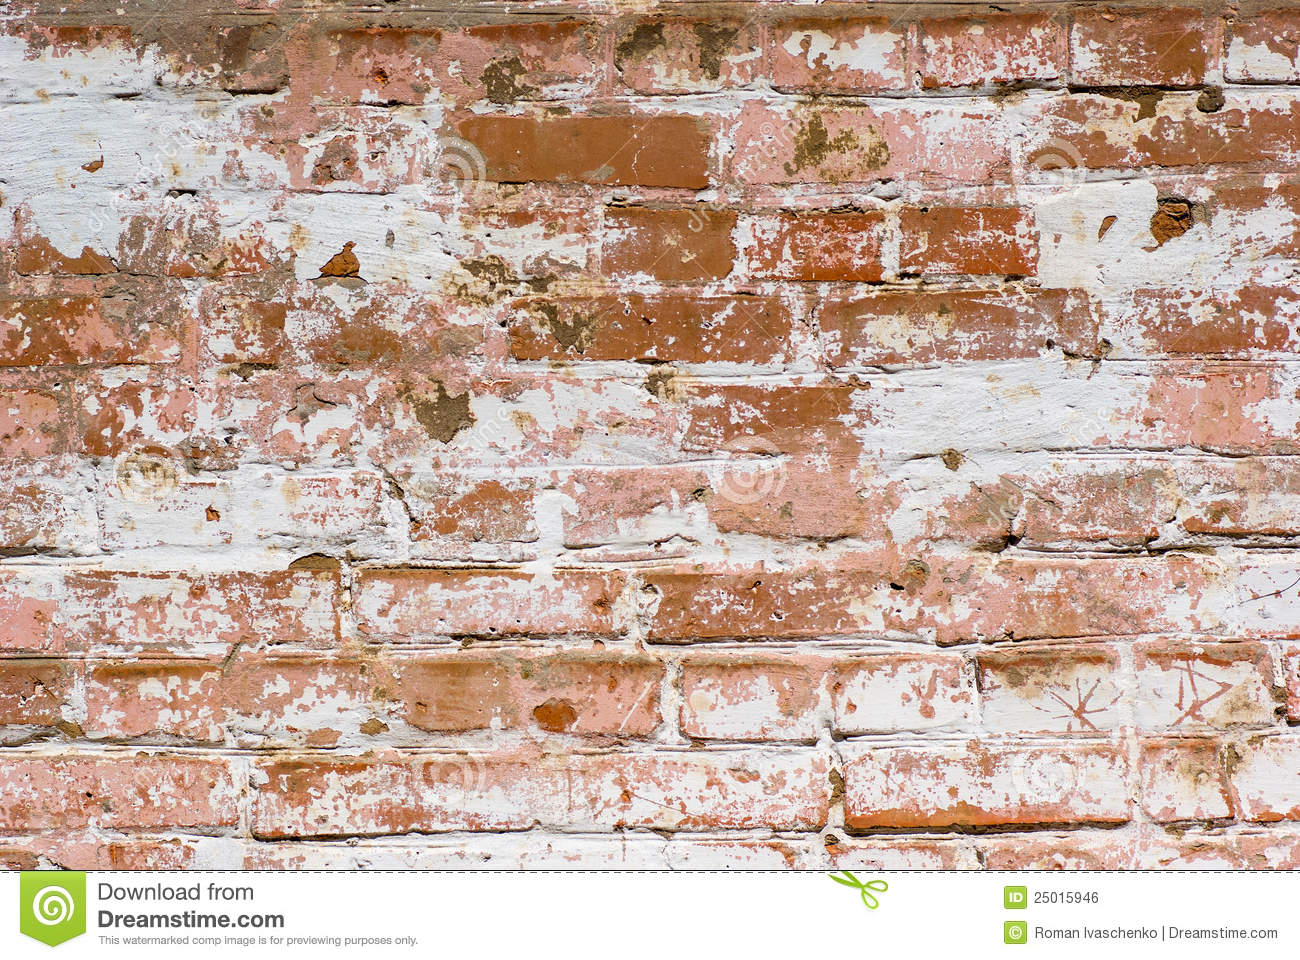 3d Brick Mural Wallpaper Flaked Off Whitewashed Brick Wall Stock Photo Image